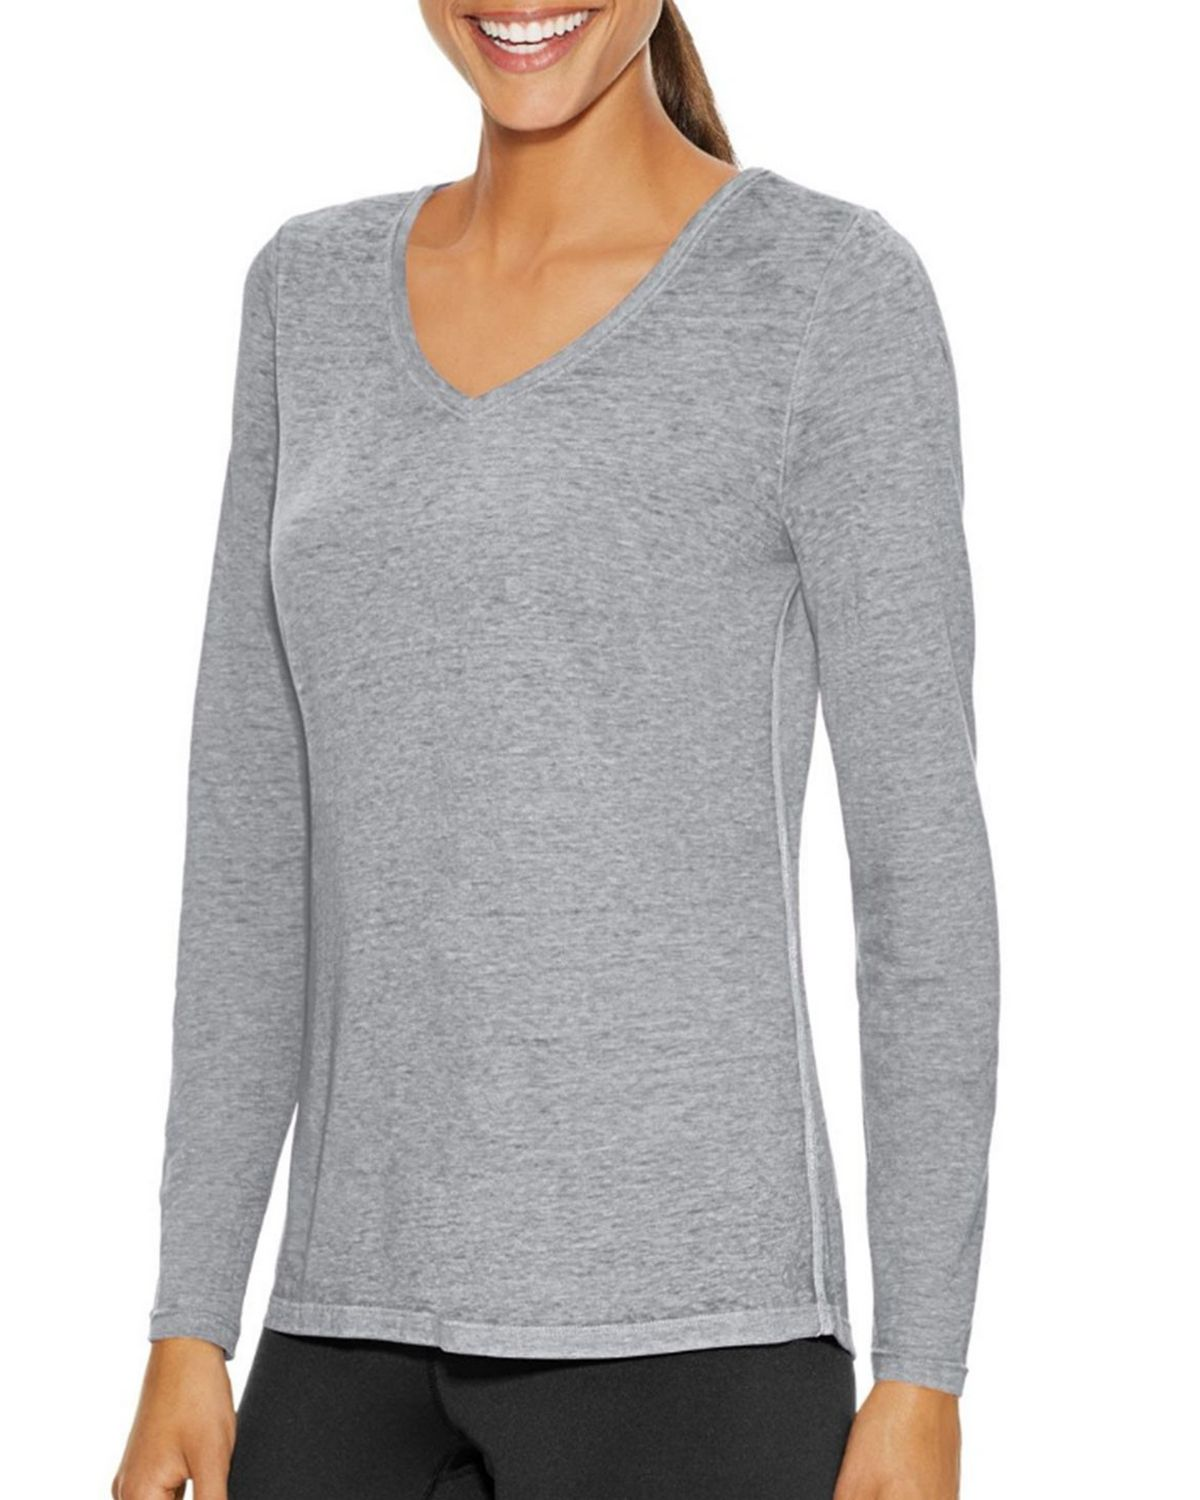 Champion W1273 Womens Authenic Wash Tee - Oxford Grey Heather - S W1273